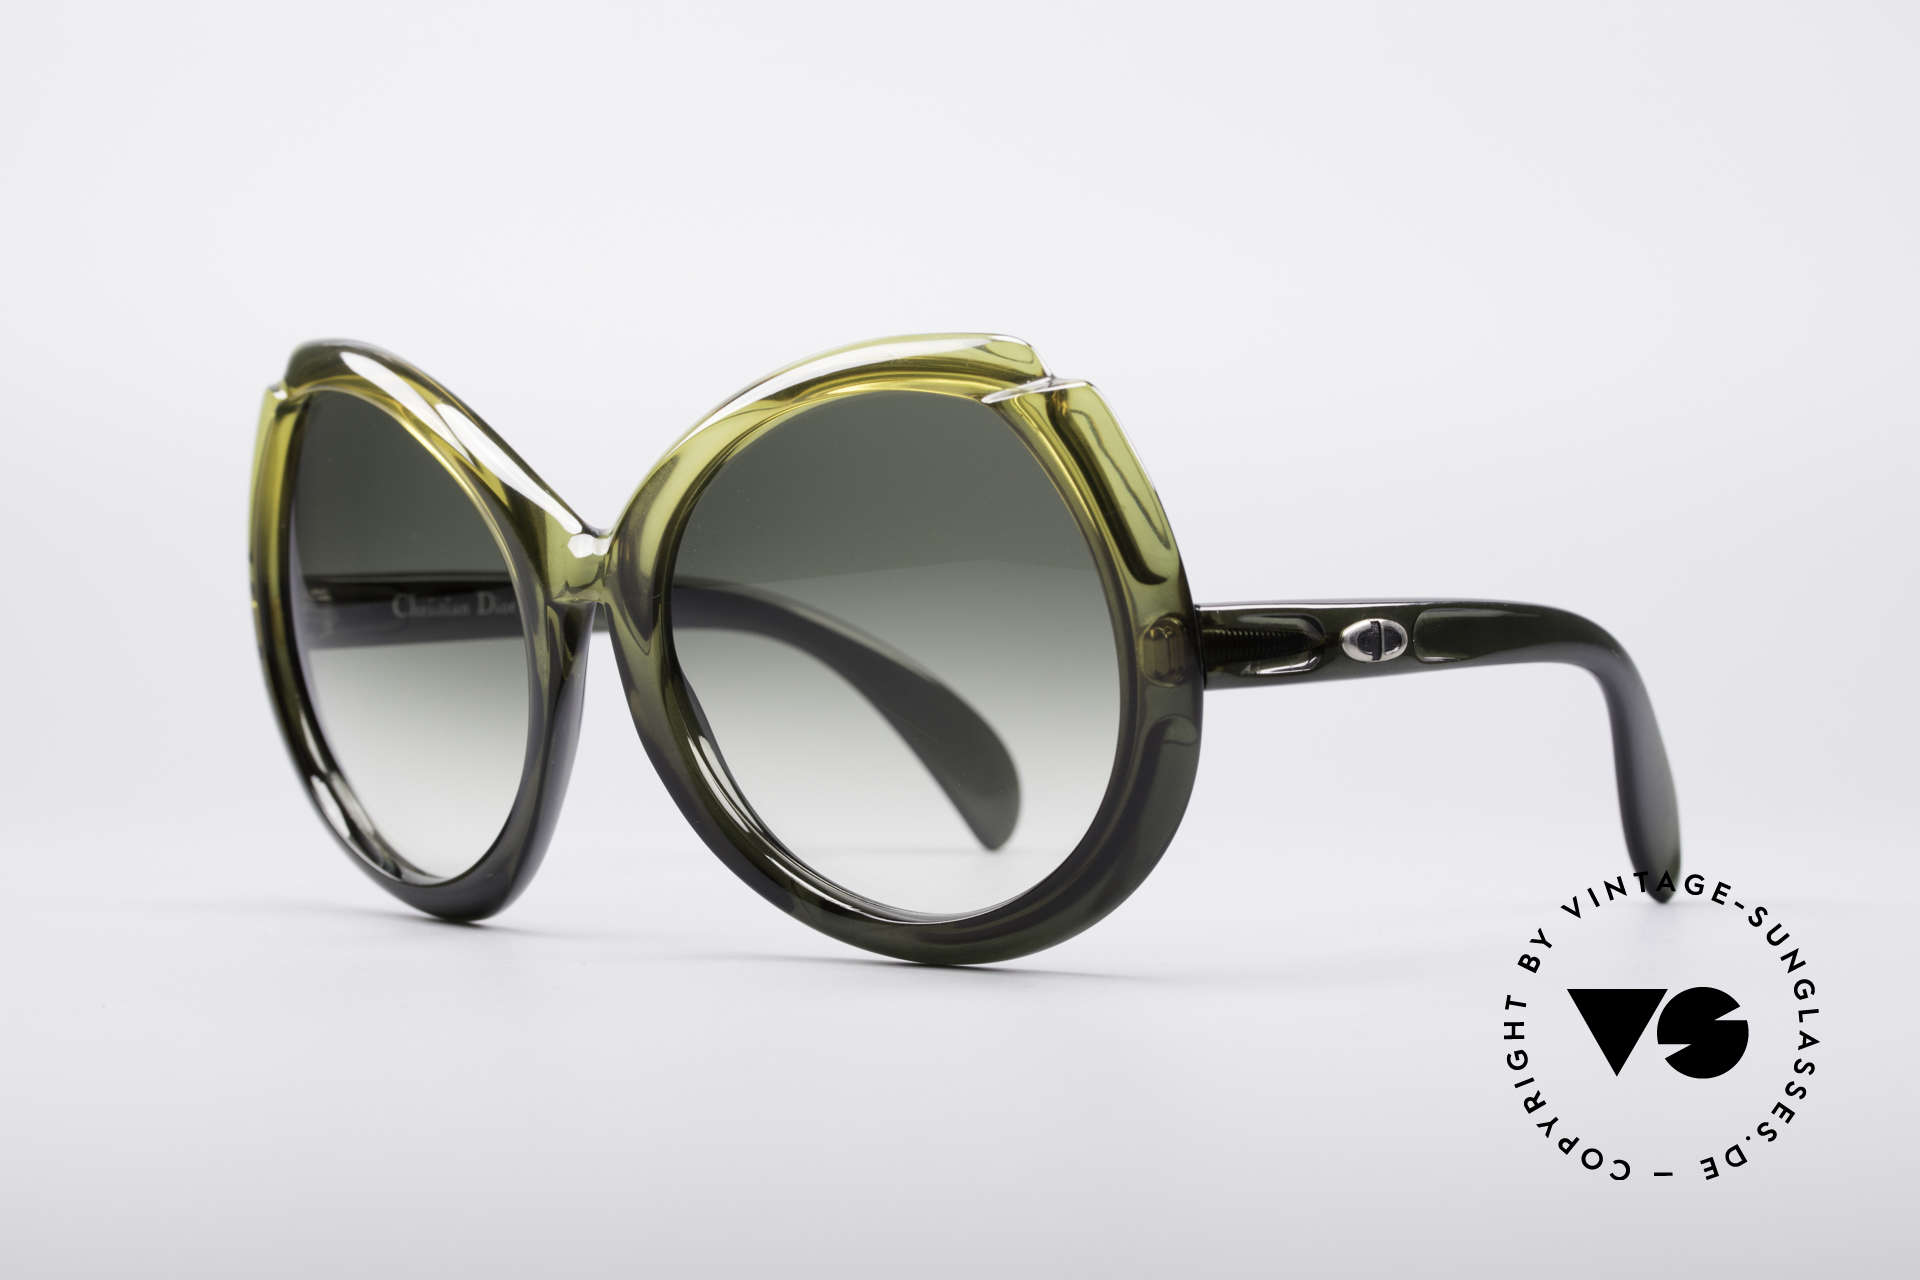 Christian Dior D11 Huge 70's Shades, HUGE size, typically 70's and a piece of fashion history, Made for Women